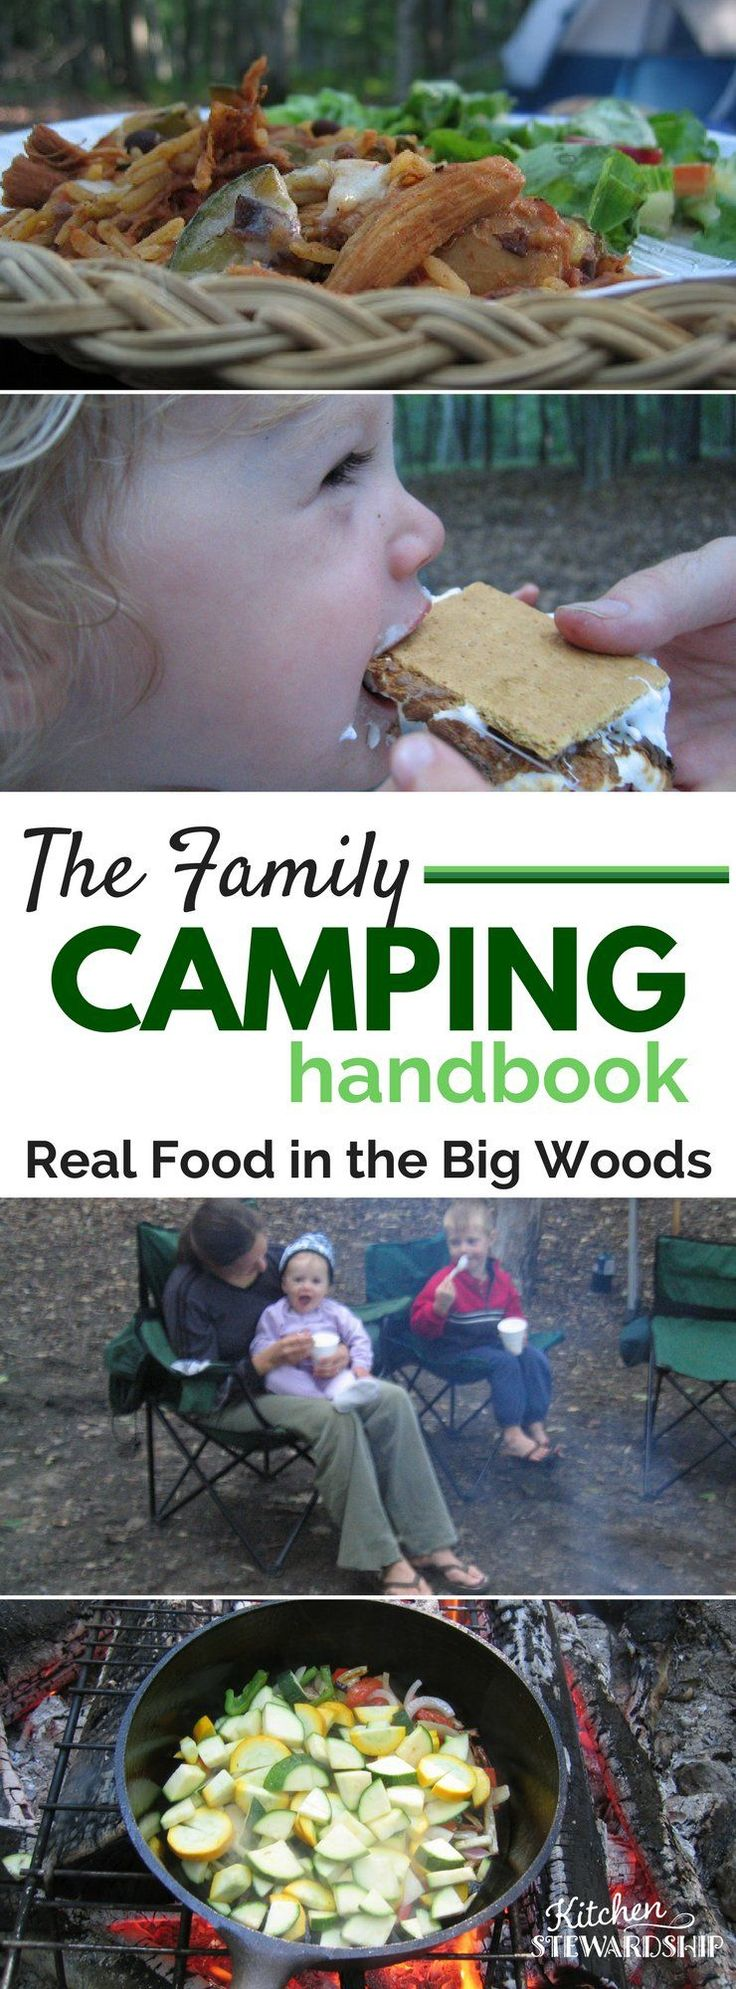 The Family Camping Handbook: Eat Healthy Around The Camp Fire